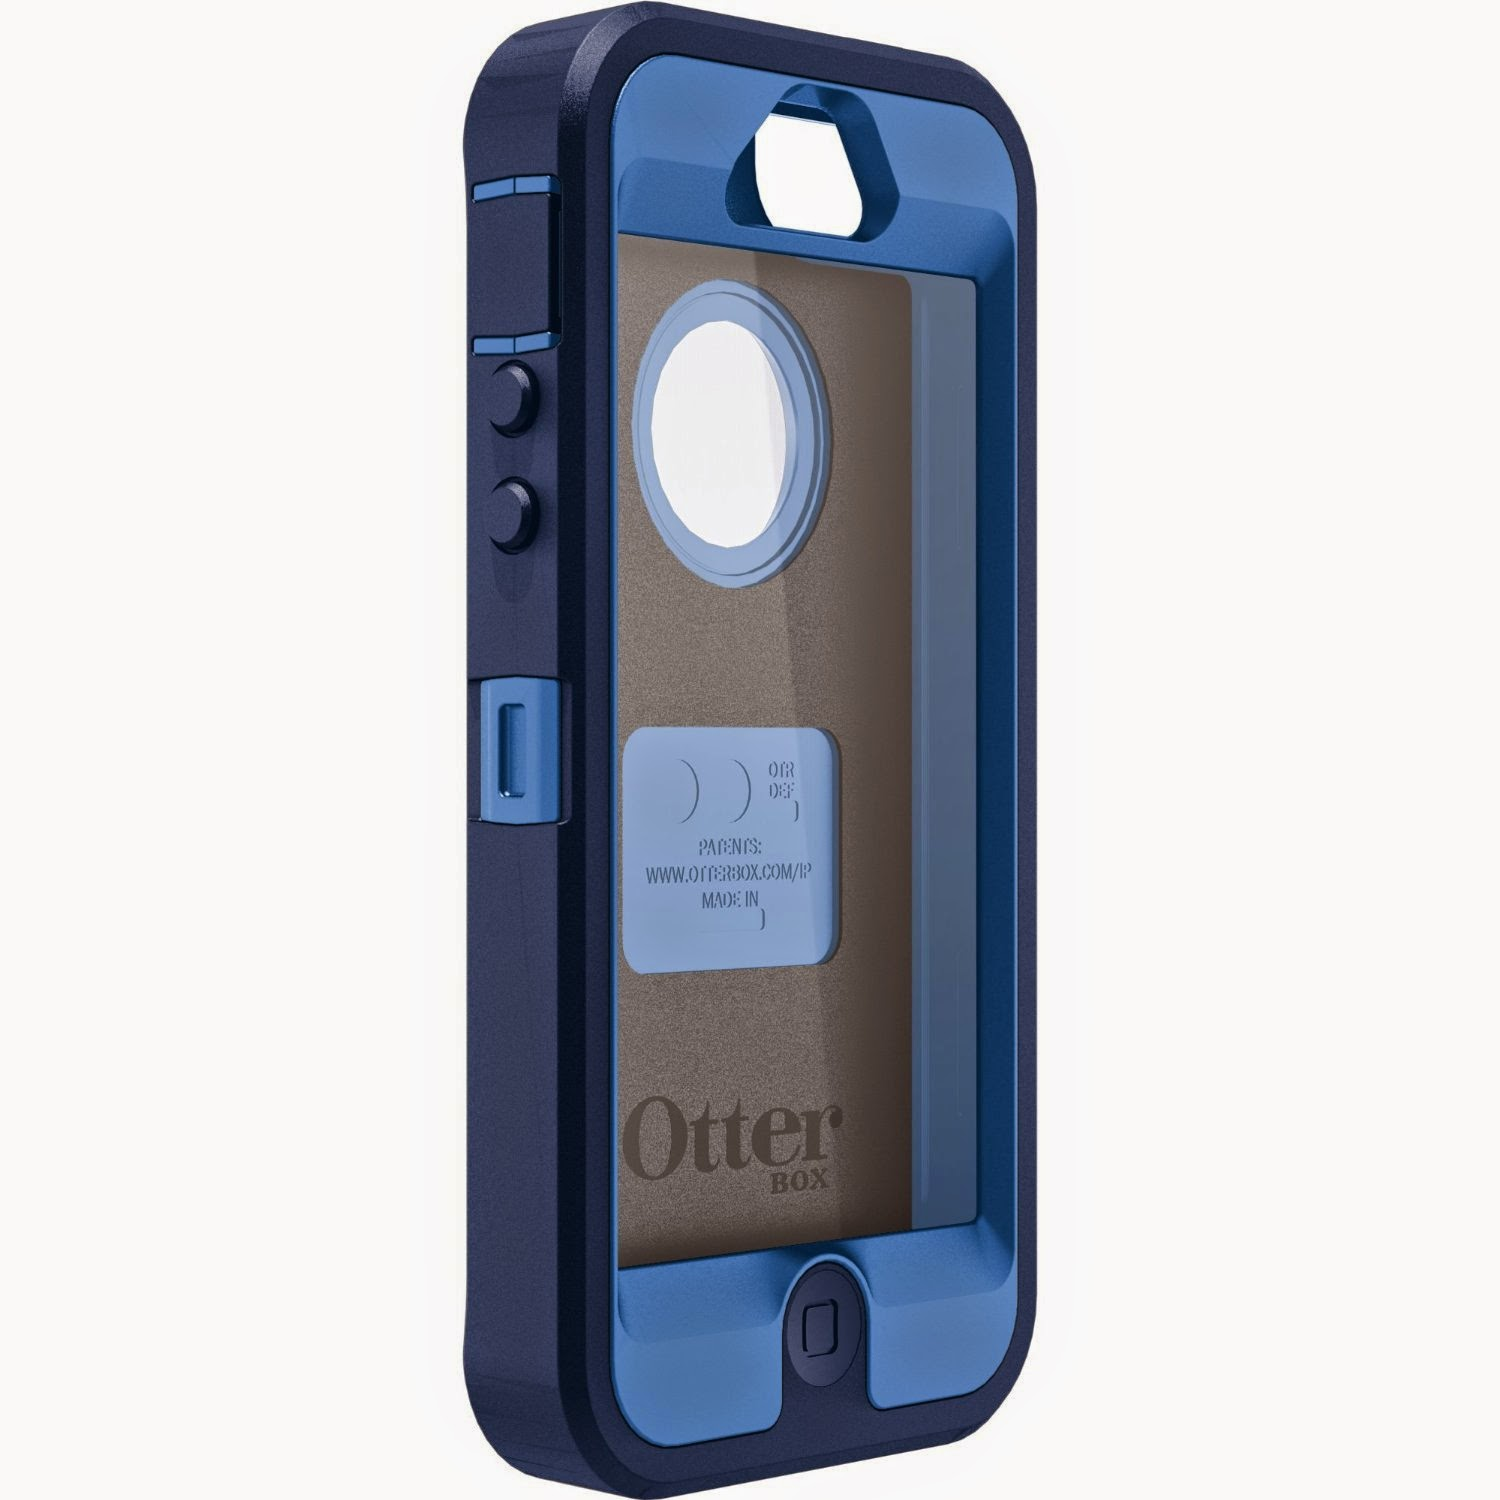 Bluenavy Case For Iphone 5 Otterbox Defender Series Otterbox